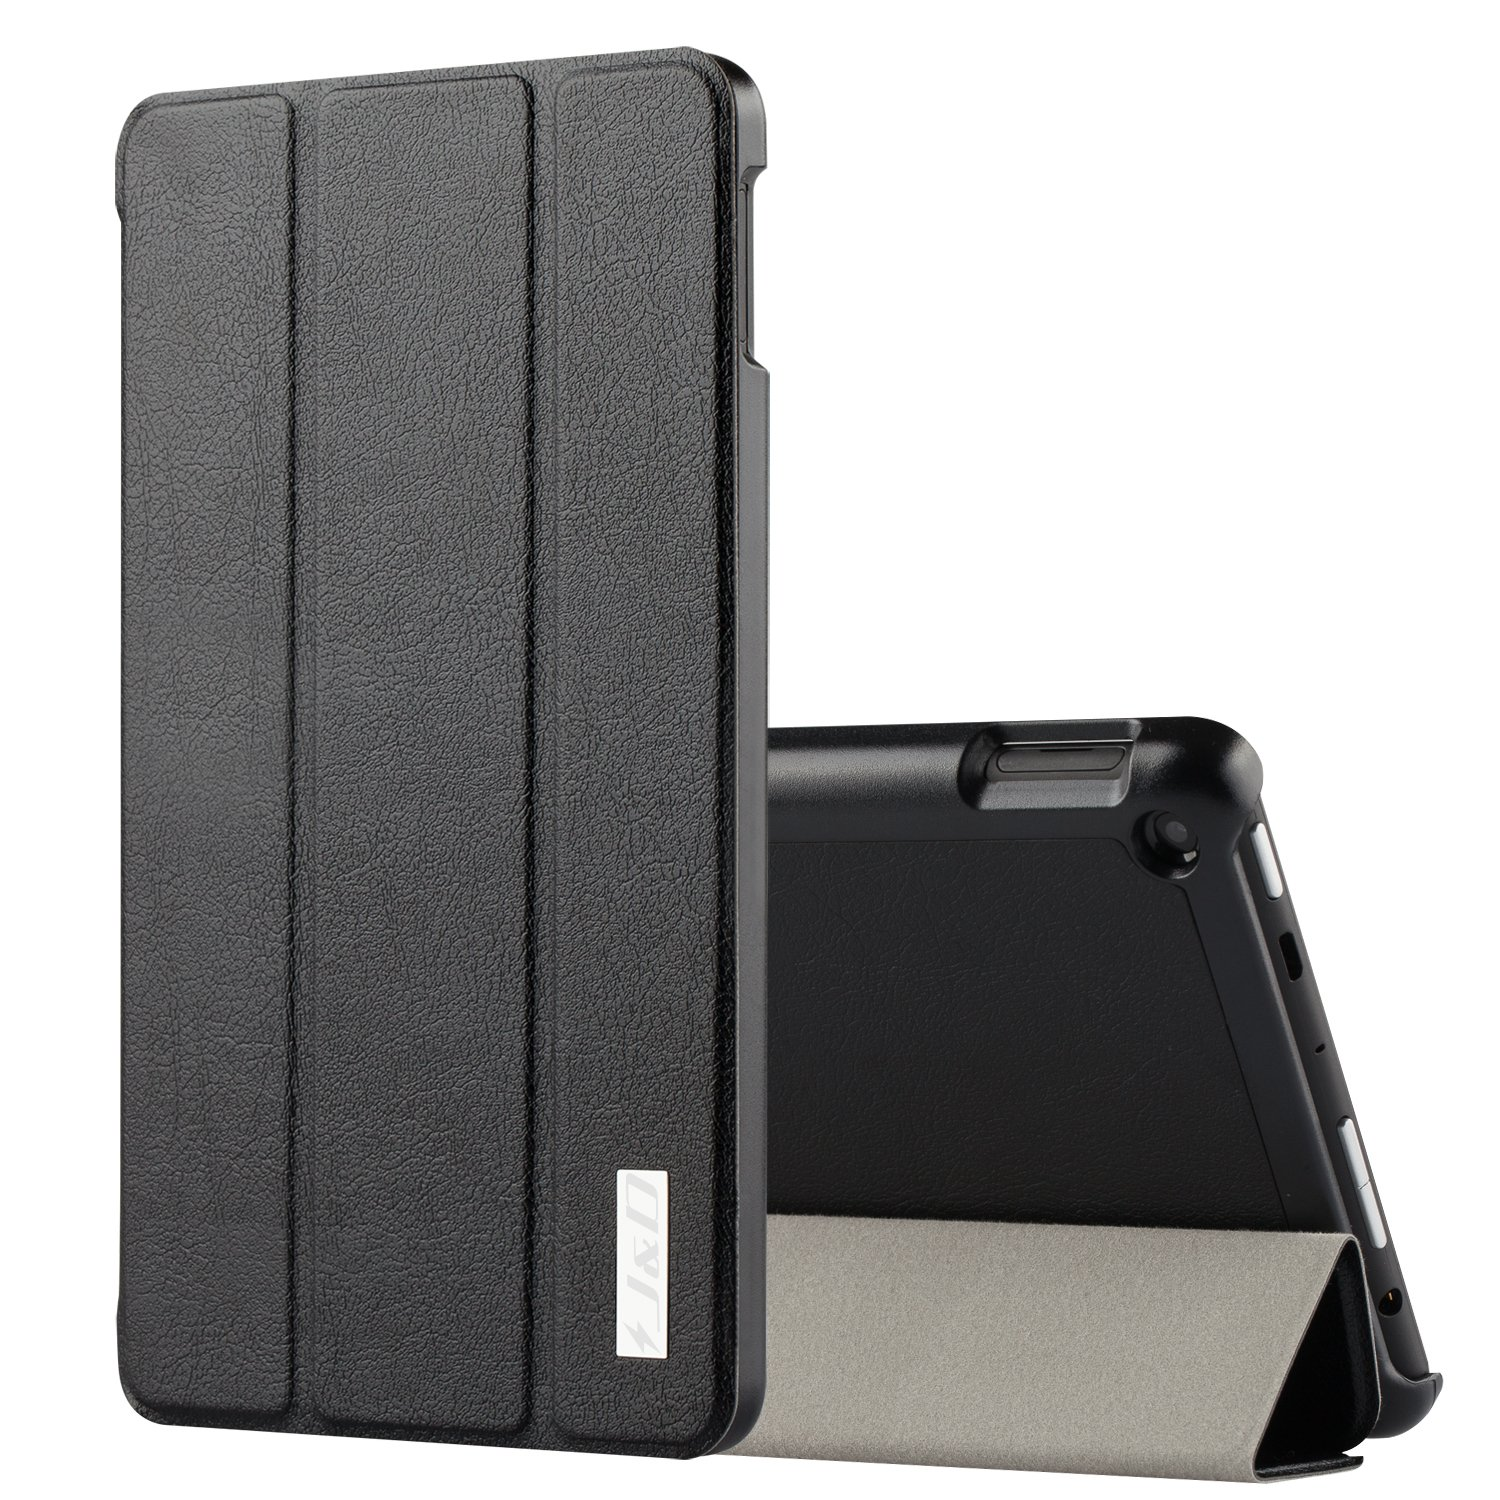 J & D Case for 7 inch Kindle Fire